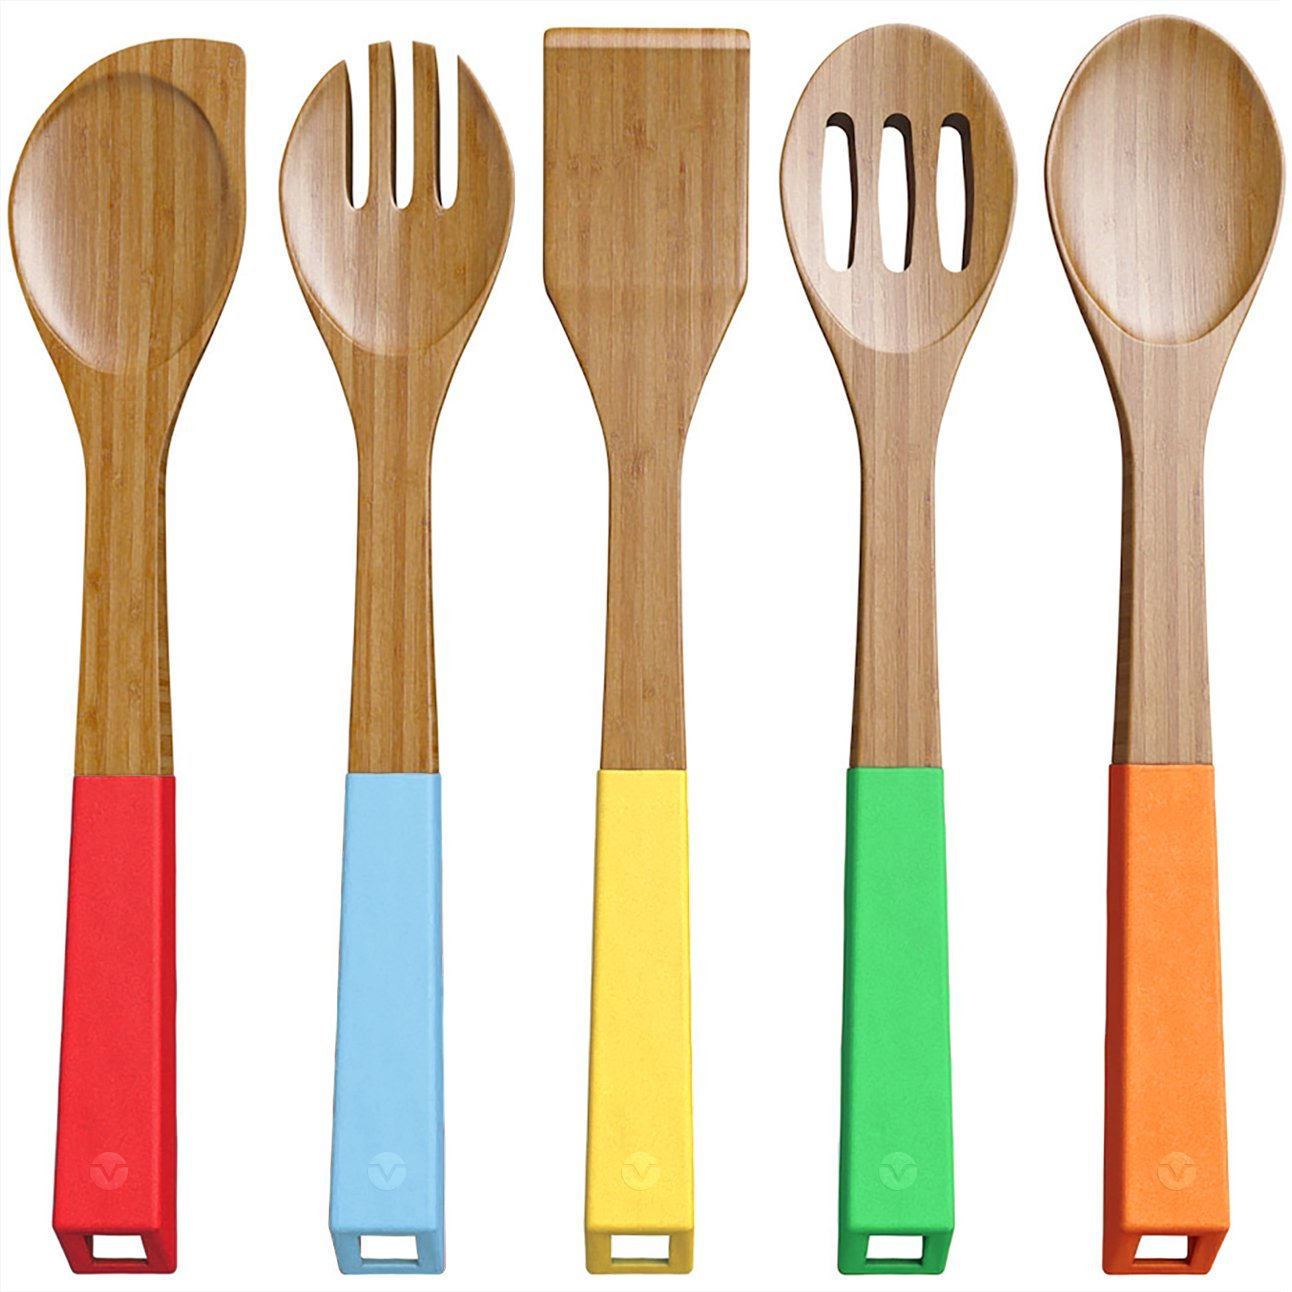 Vremi 5 Piece Bamboo Spoons Cooking Utensils-Best Wooden Spoon Sets